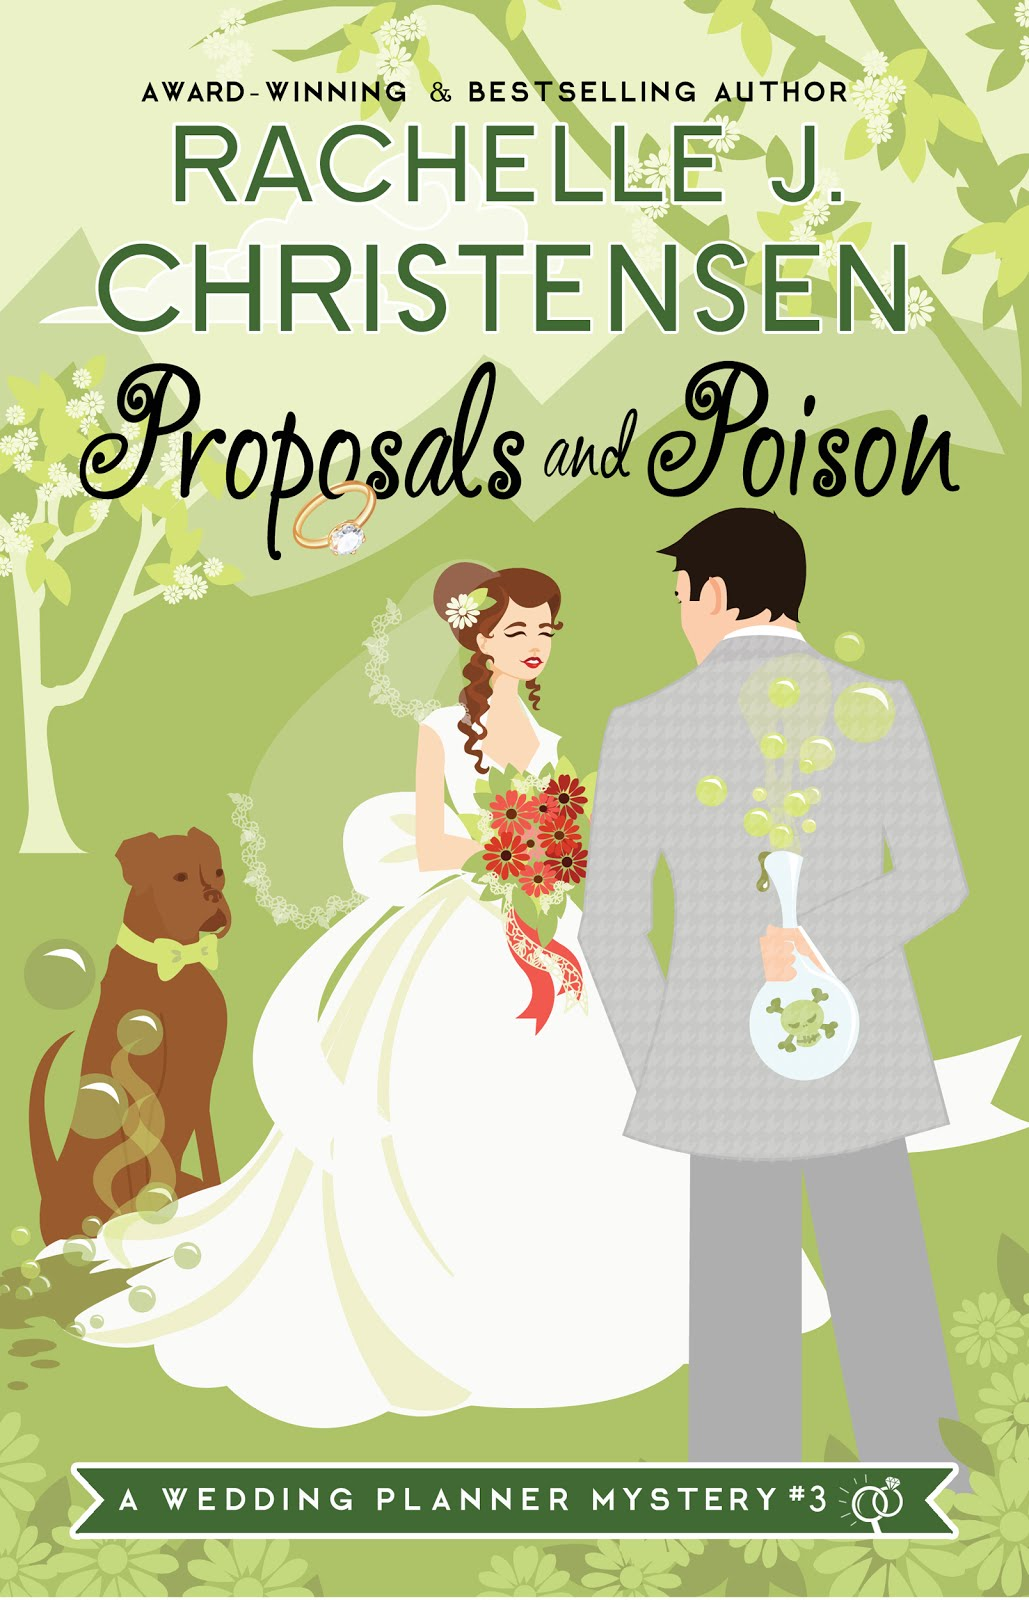 #3 in the Wedding Planner Mystery Series